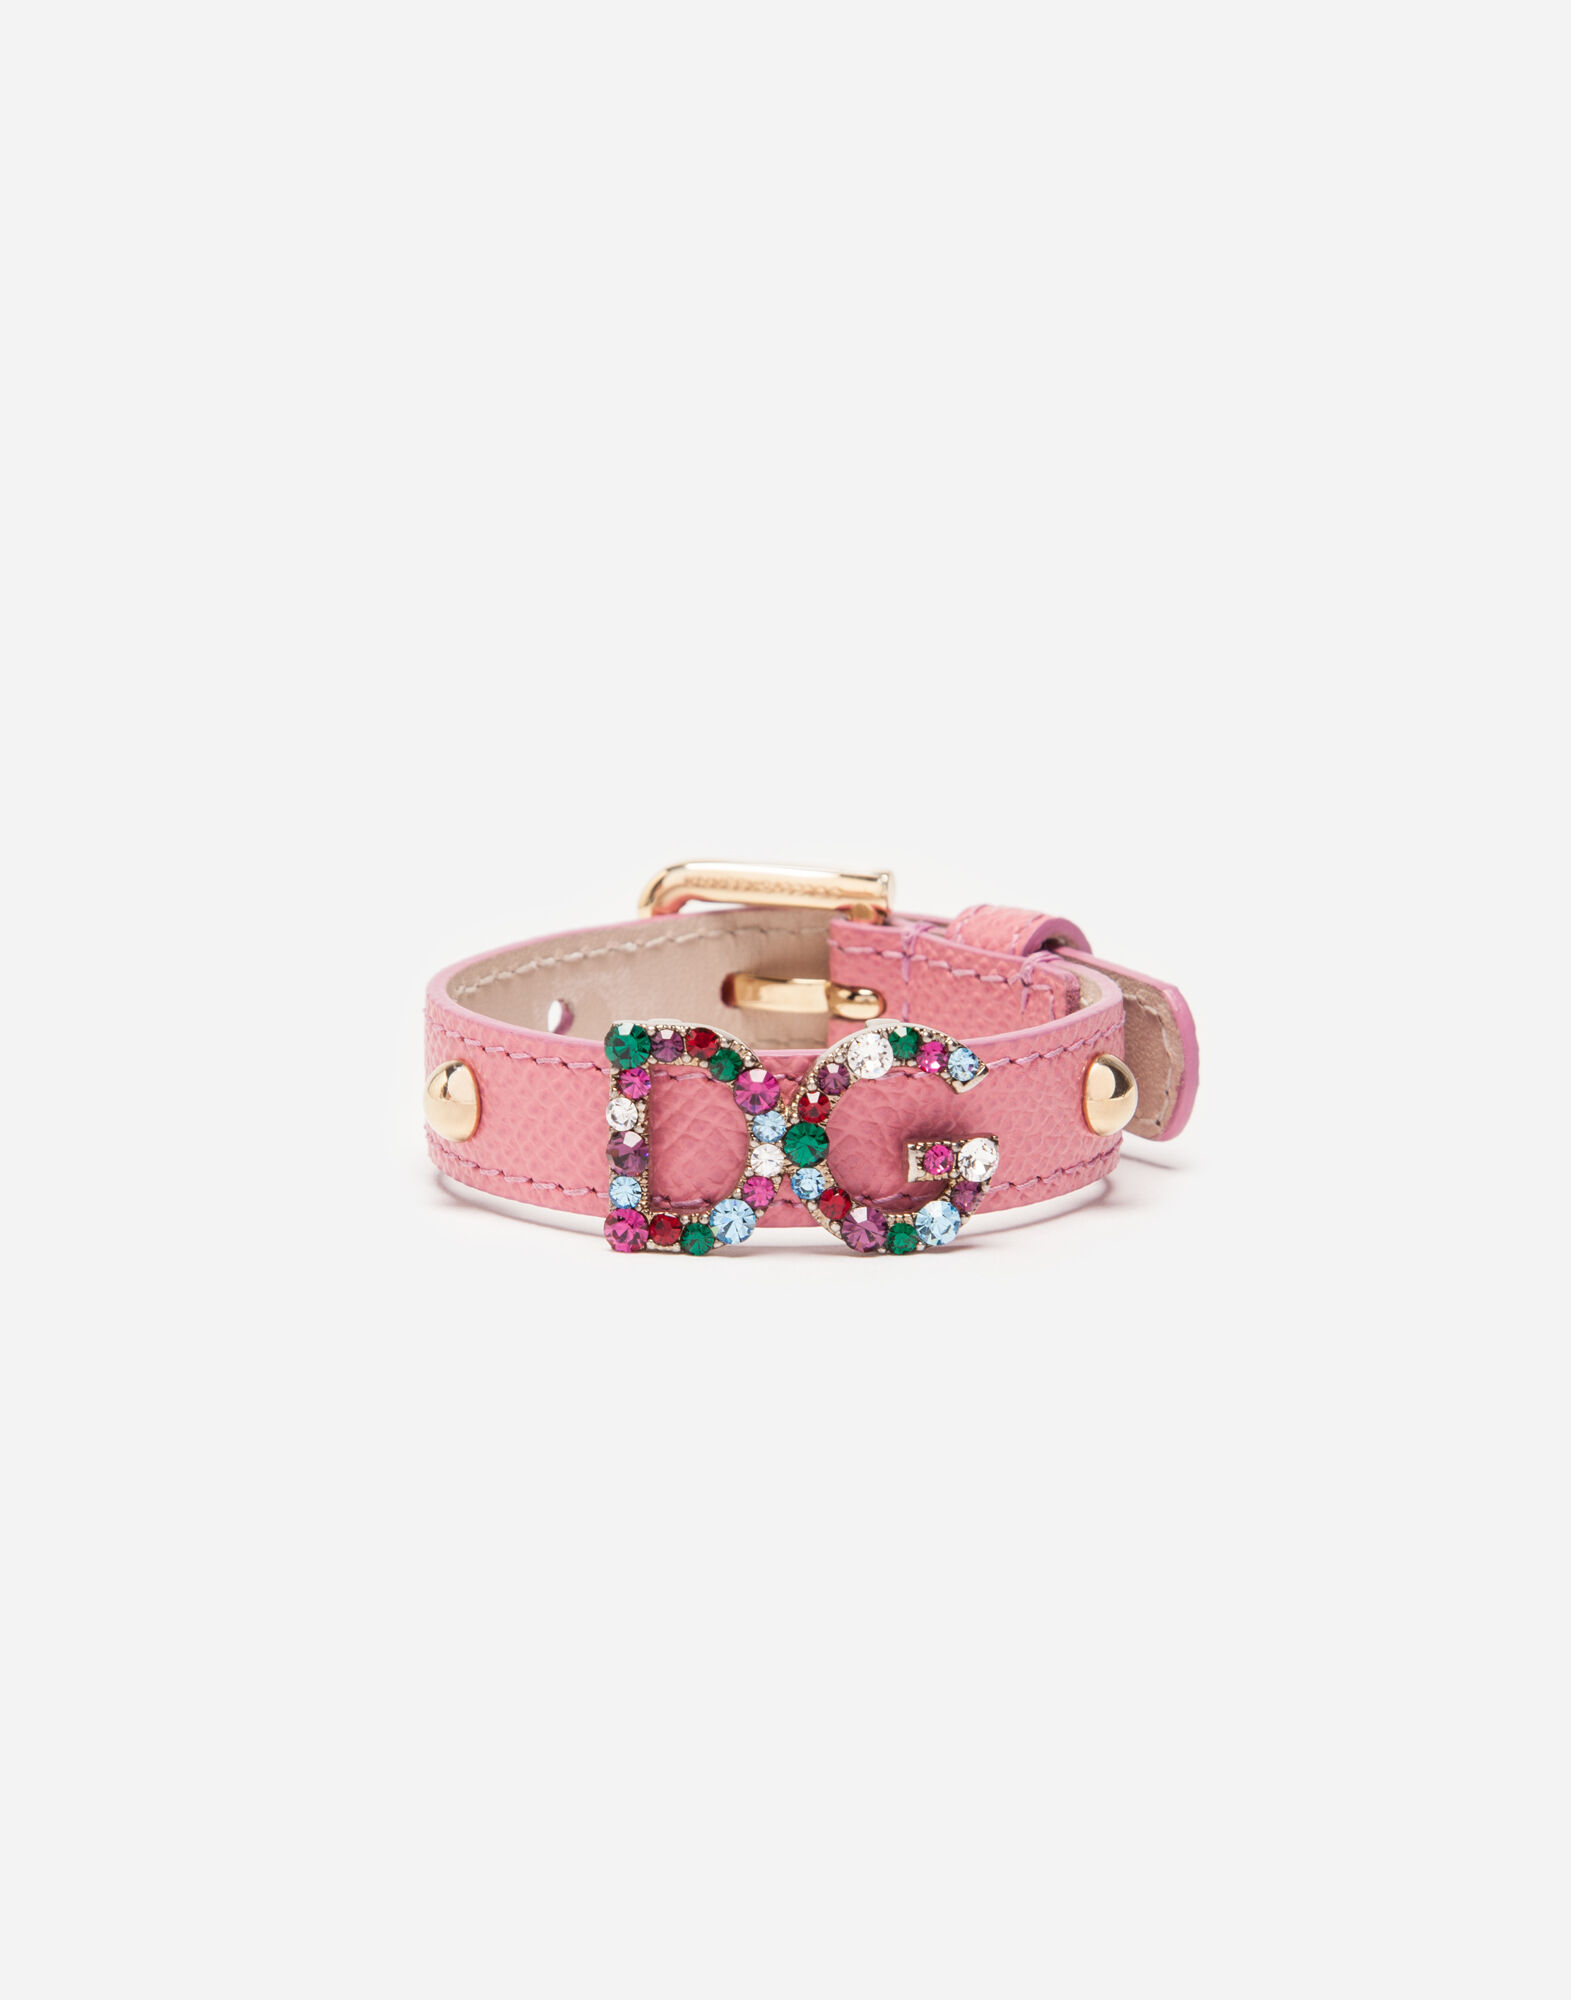 LEATHER BRACELET WITH PATCH